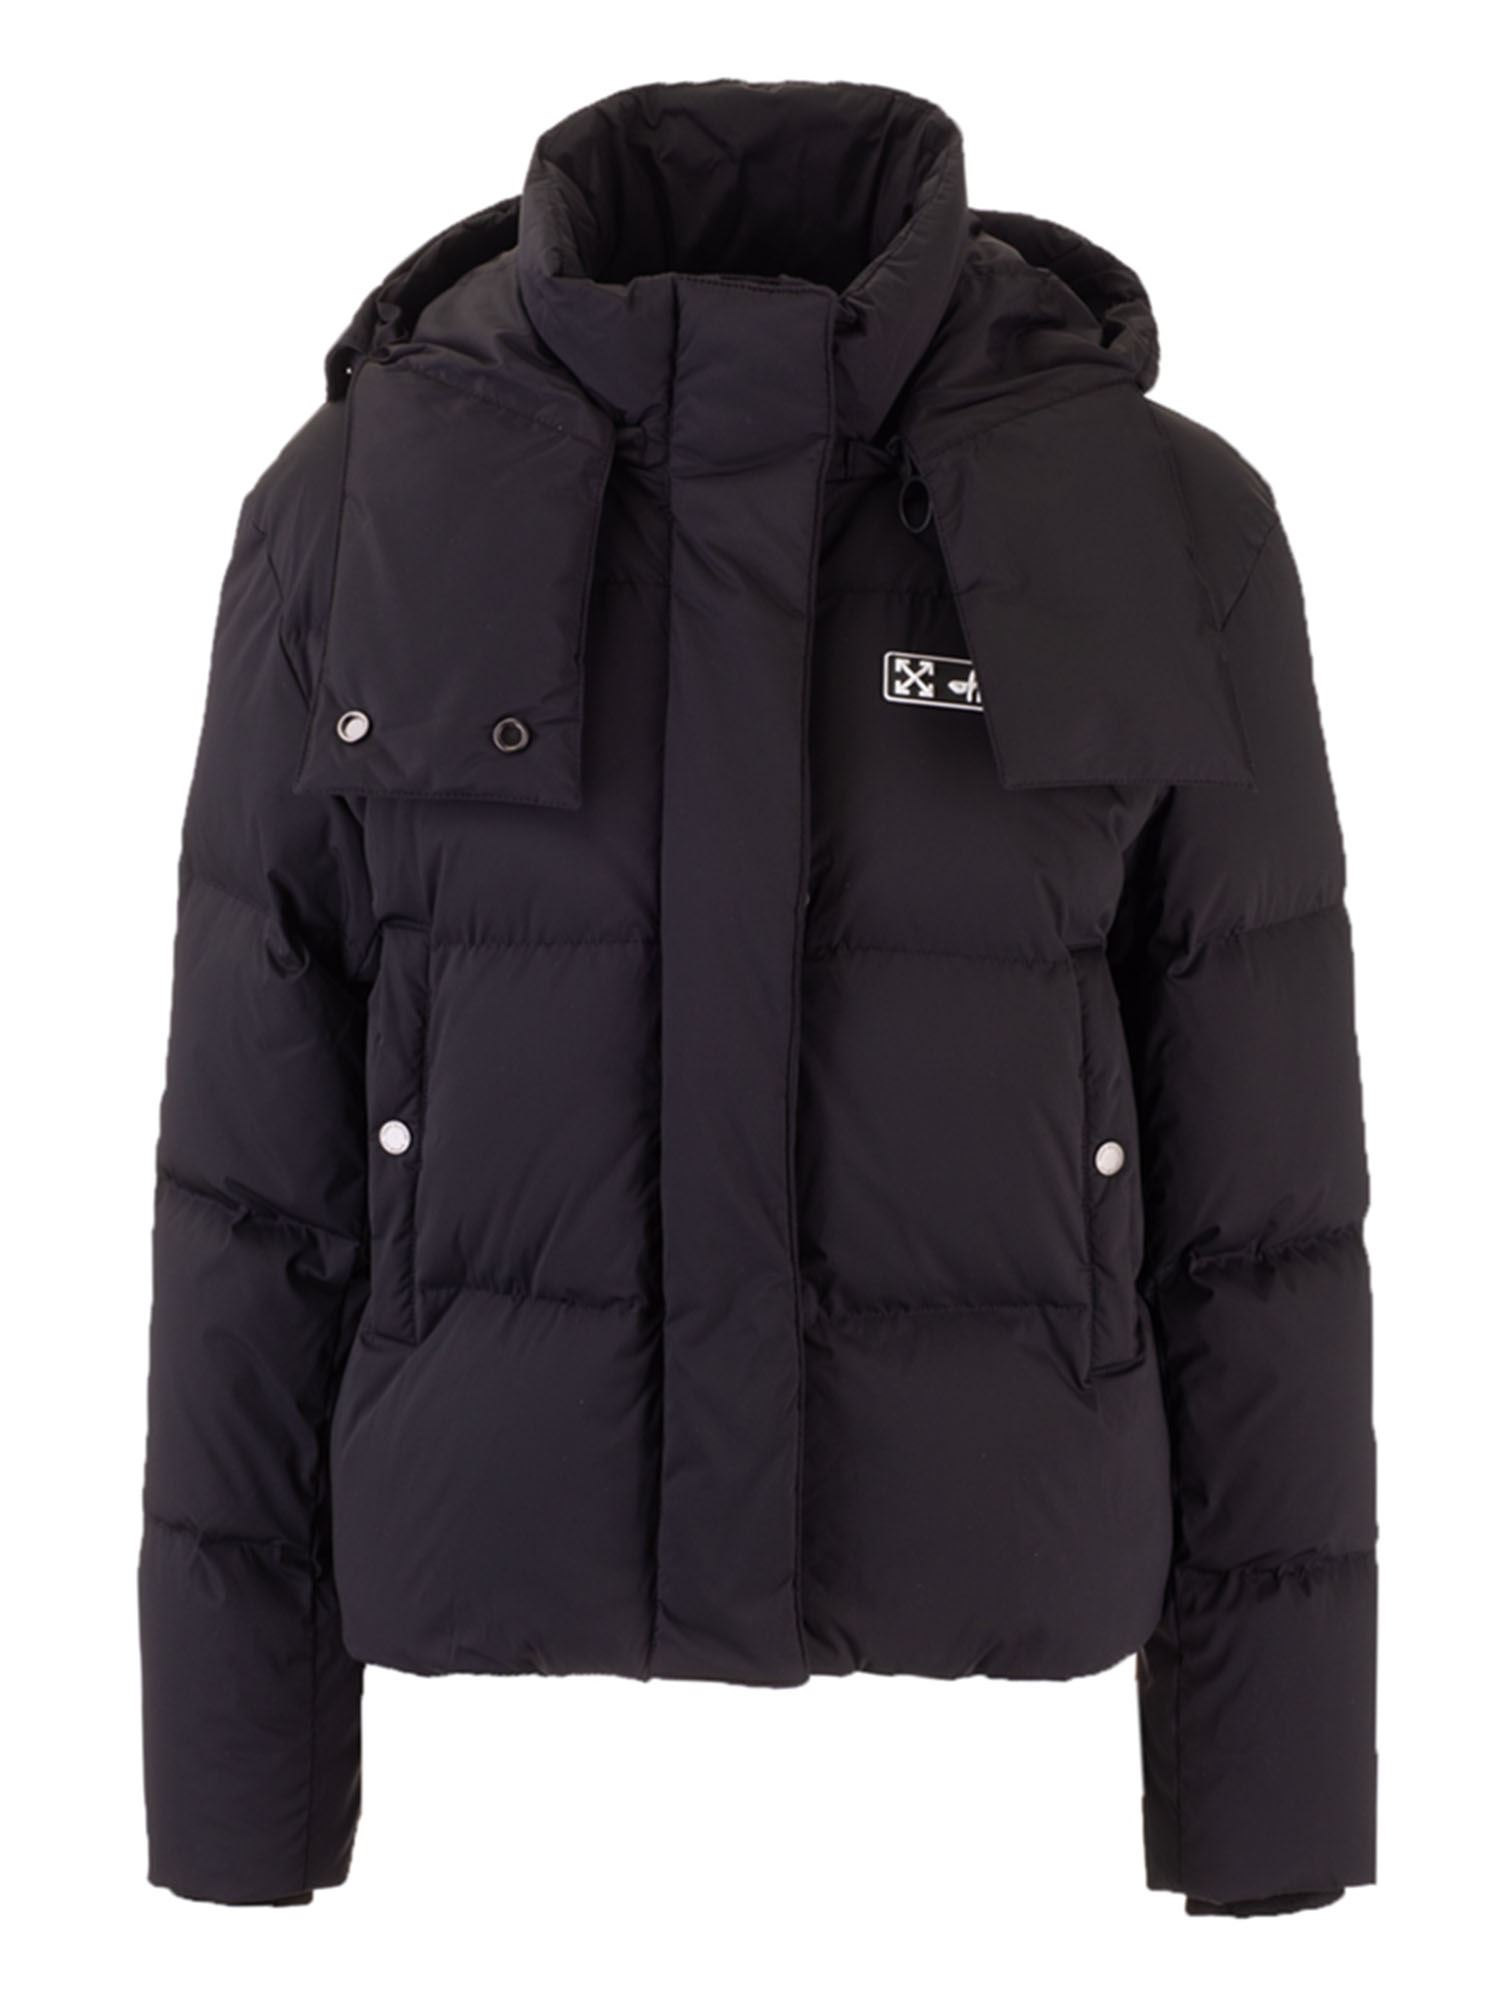 Off-White HOODED DOWN JACKET IN BLACK